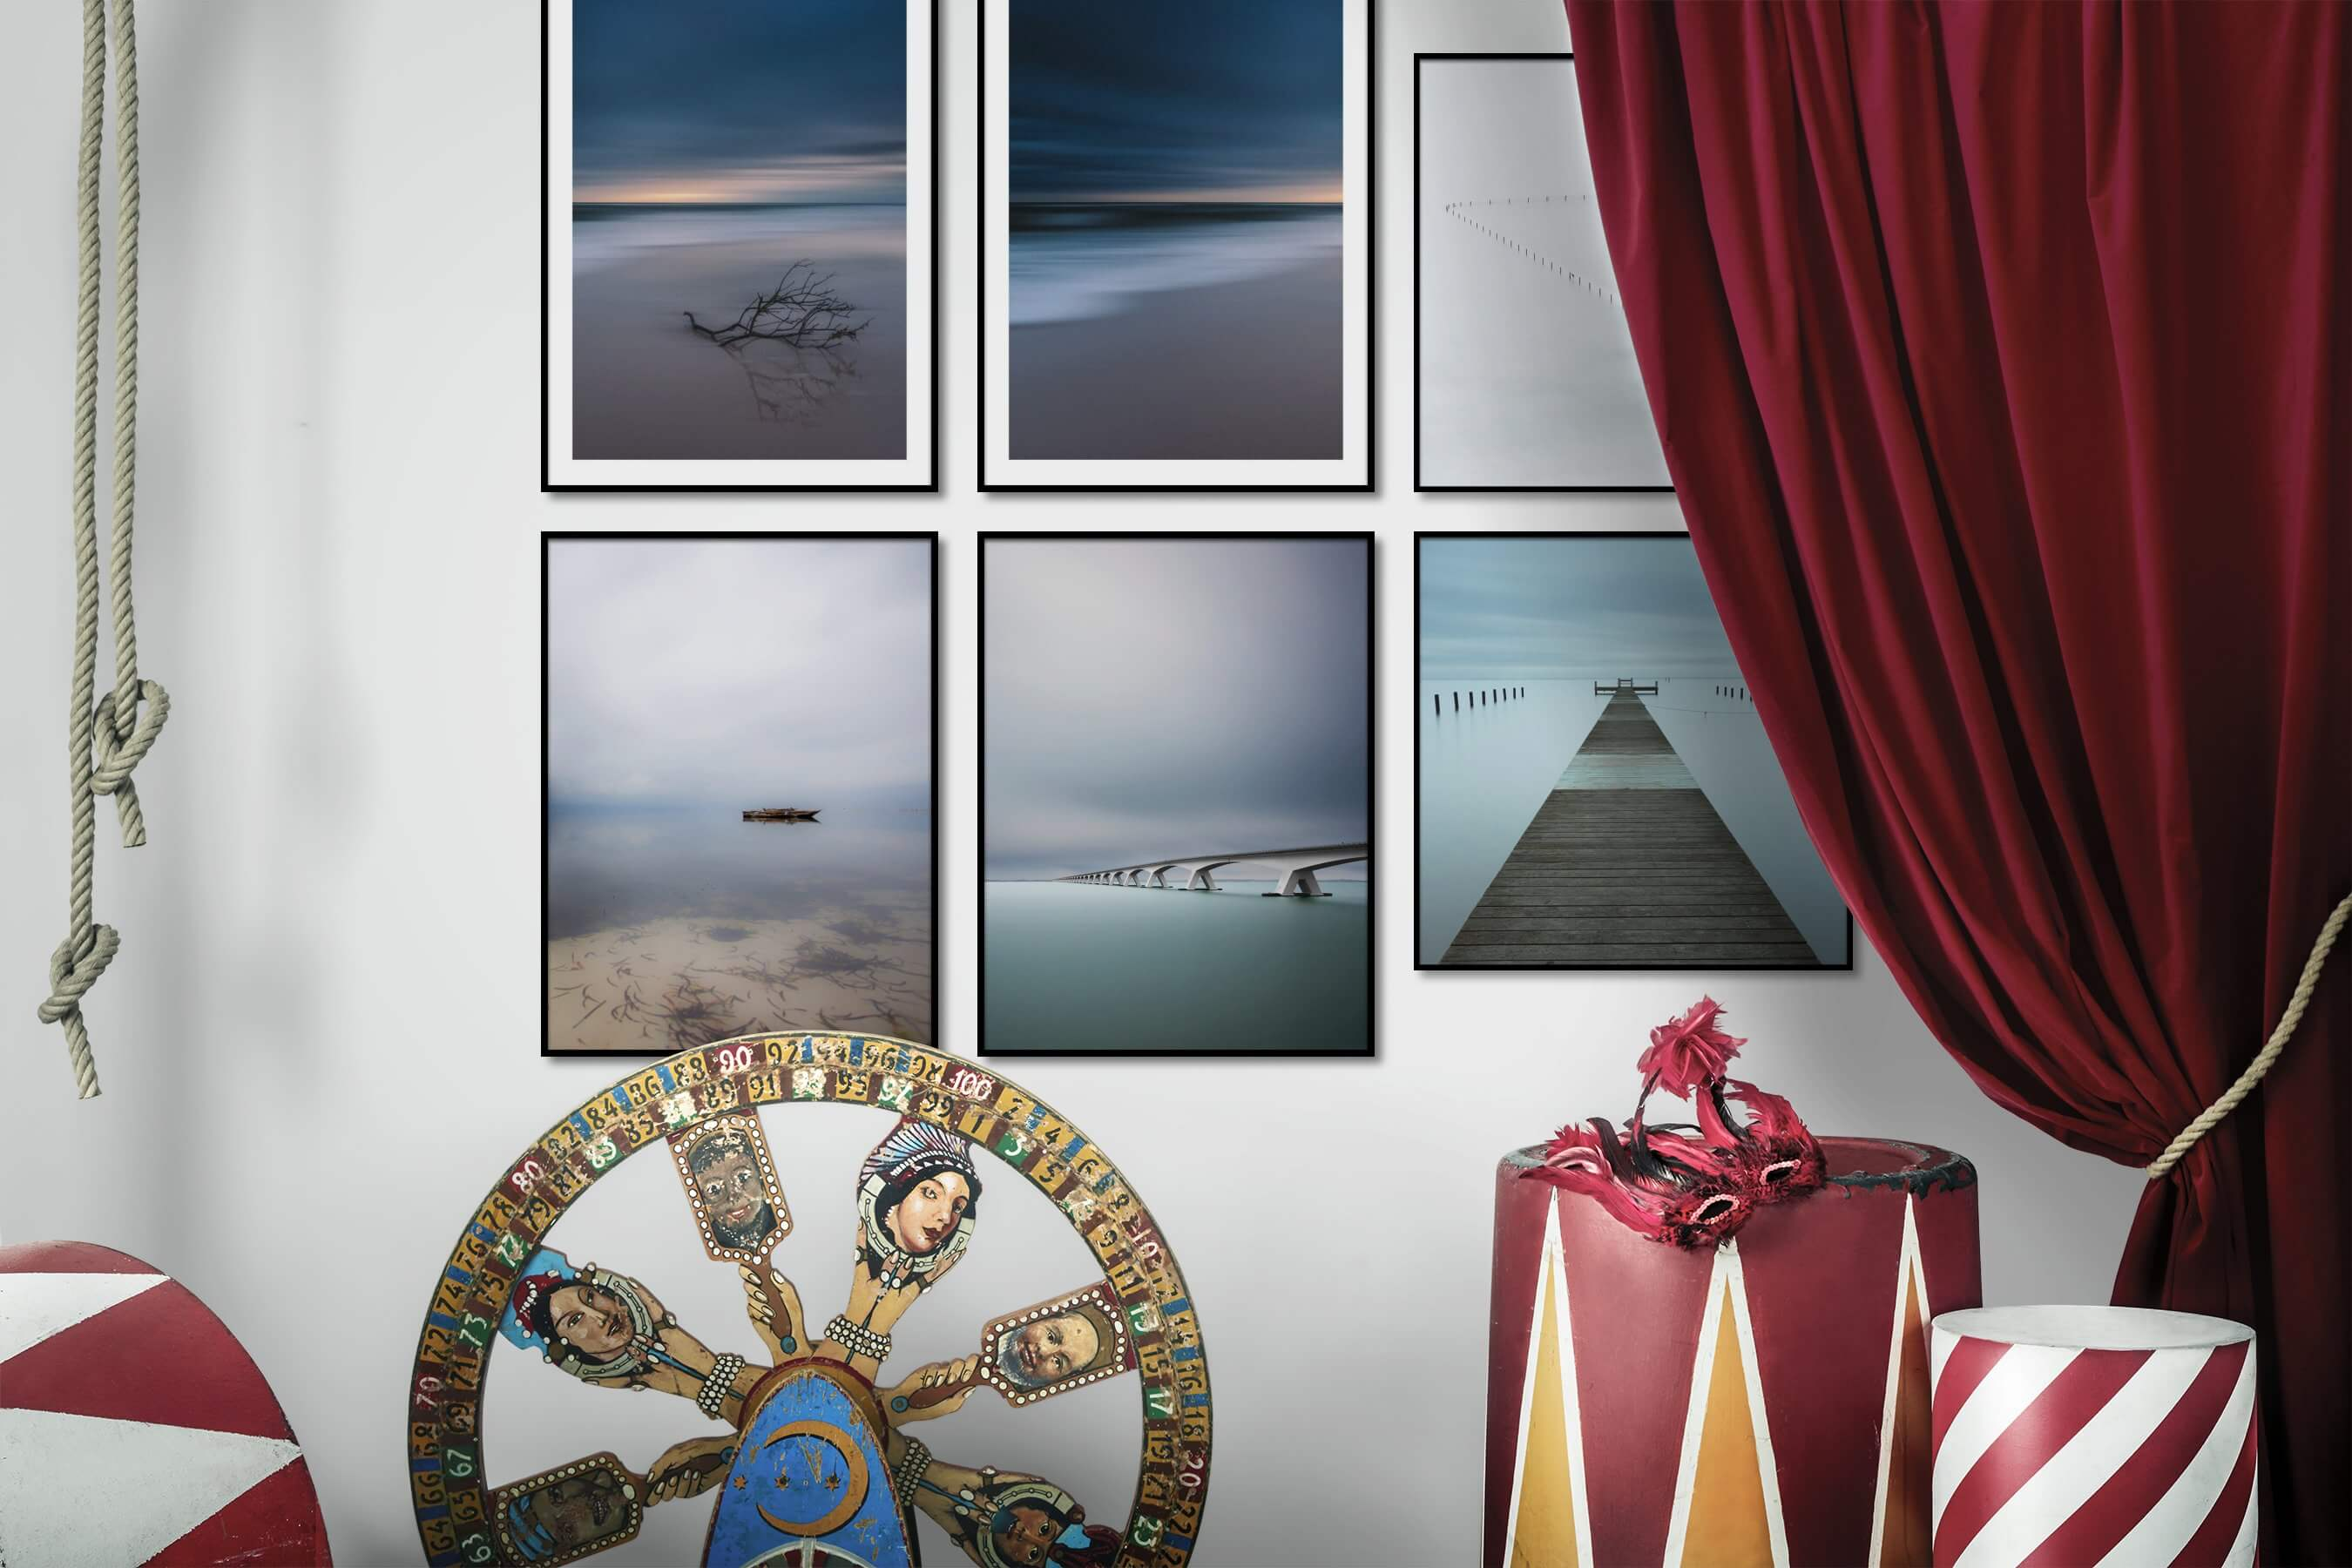 Gallery wall idea with six framed pictures arranged on a wall depicting For the Minimalist, Beach & Water, and Mindfulness